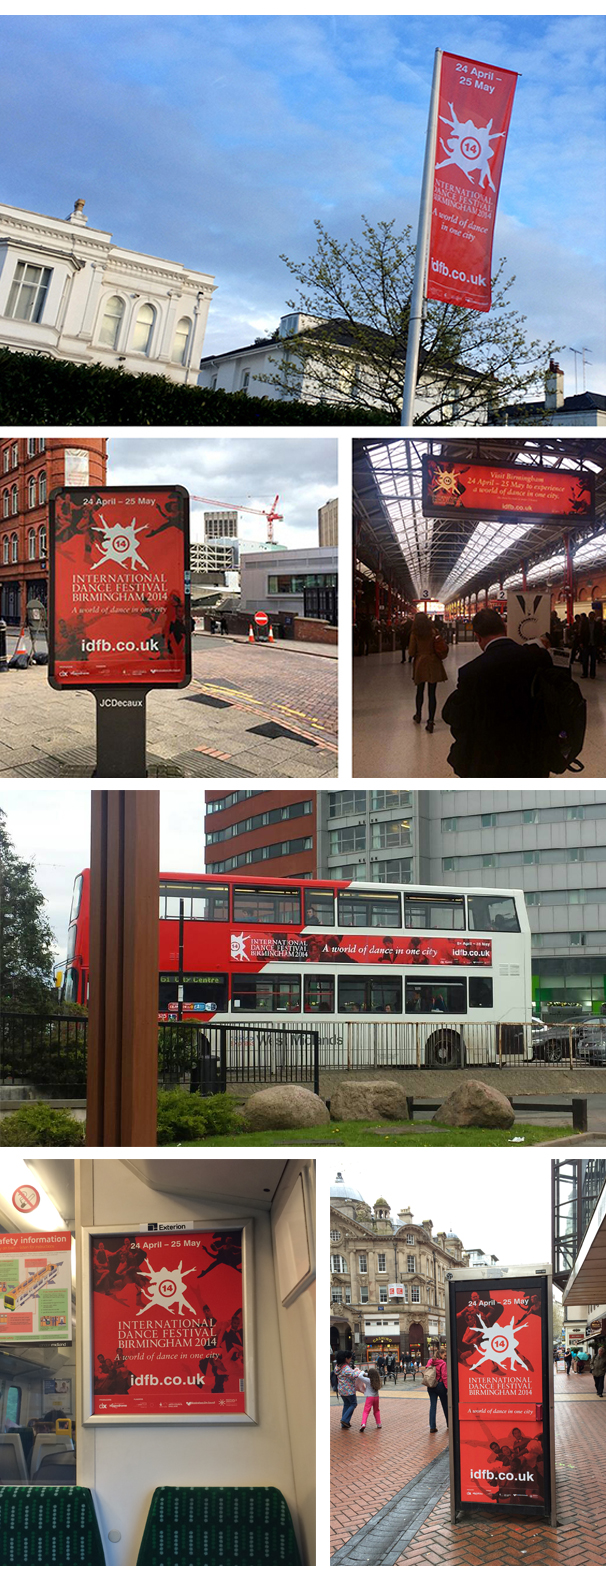 Photos of various bits of IDFB outdoor promotion – flag, poster, banner, bus, train, phonebox